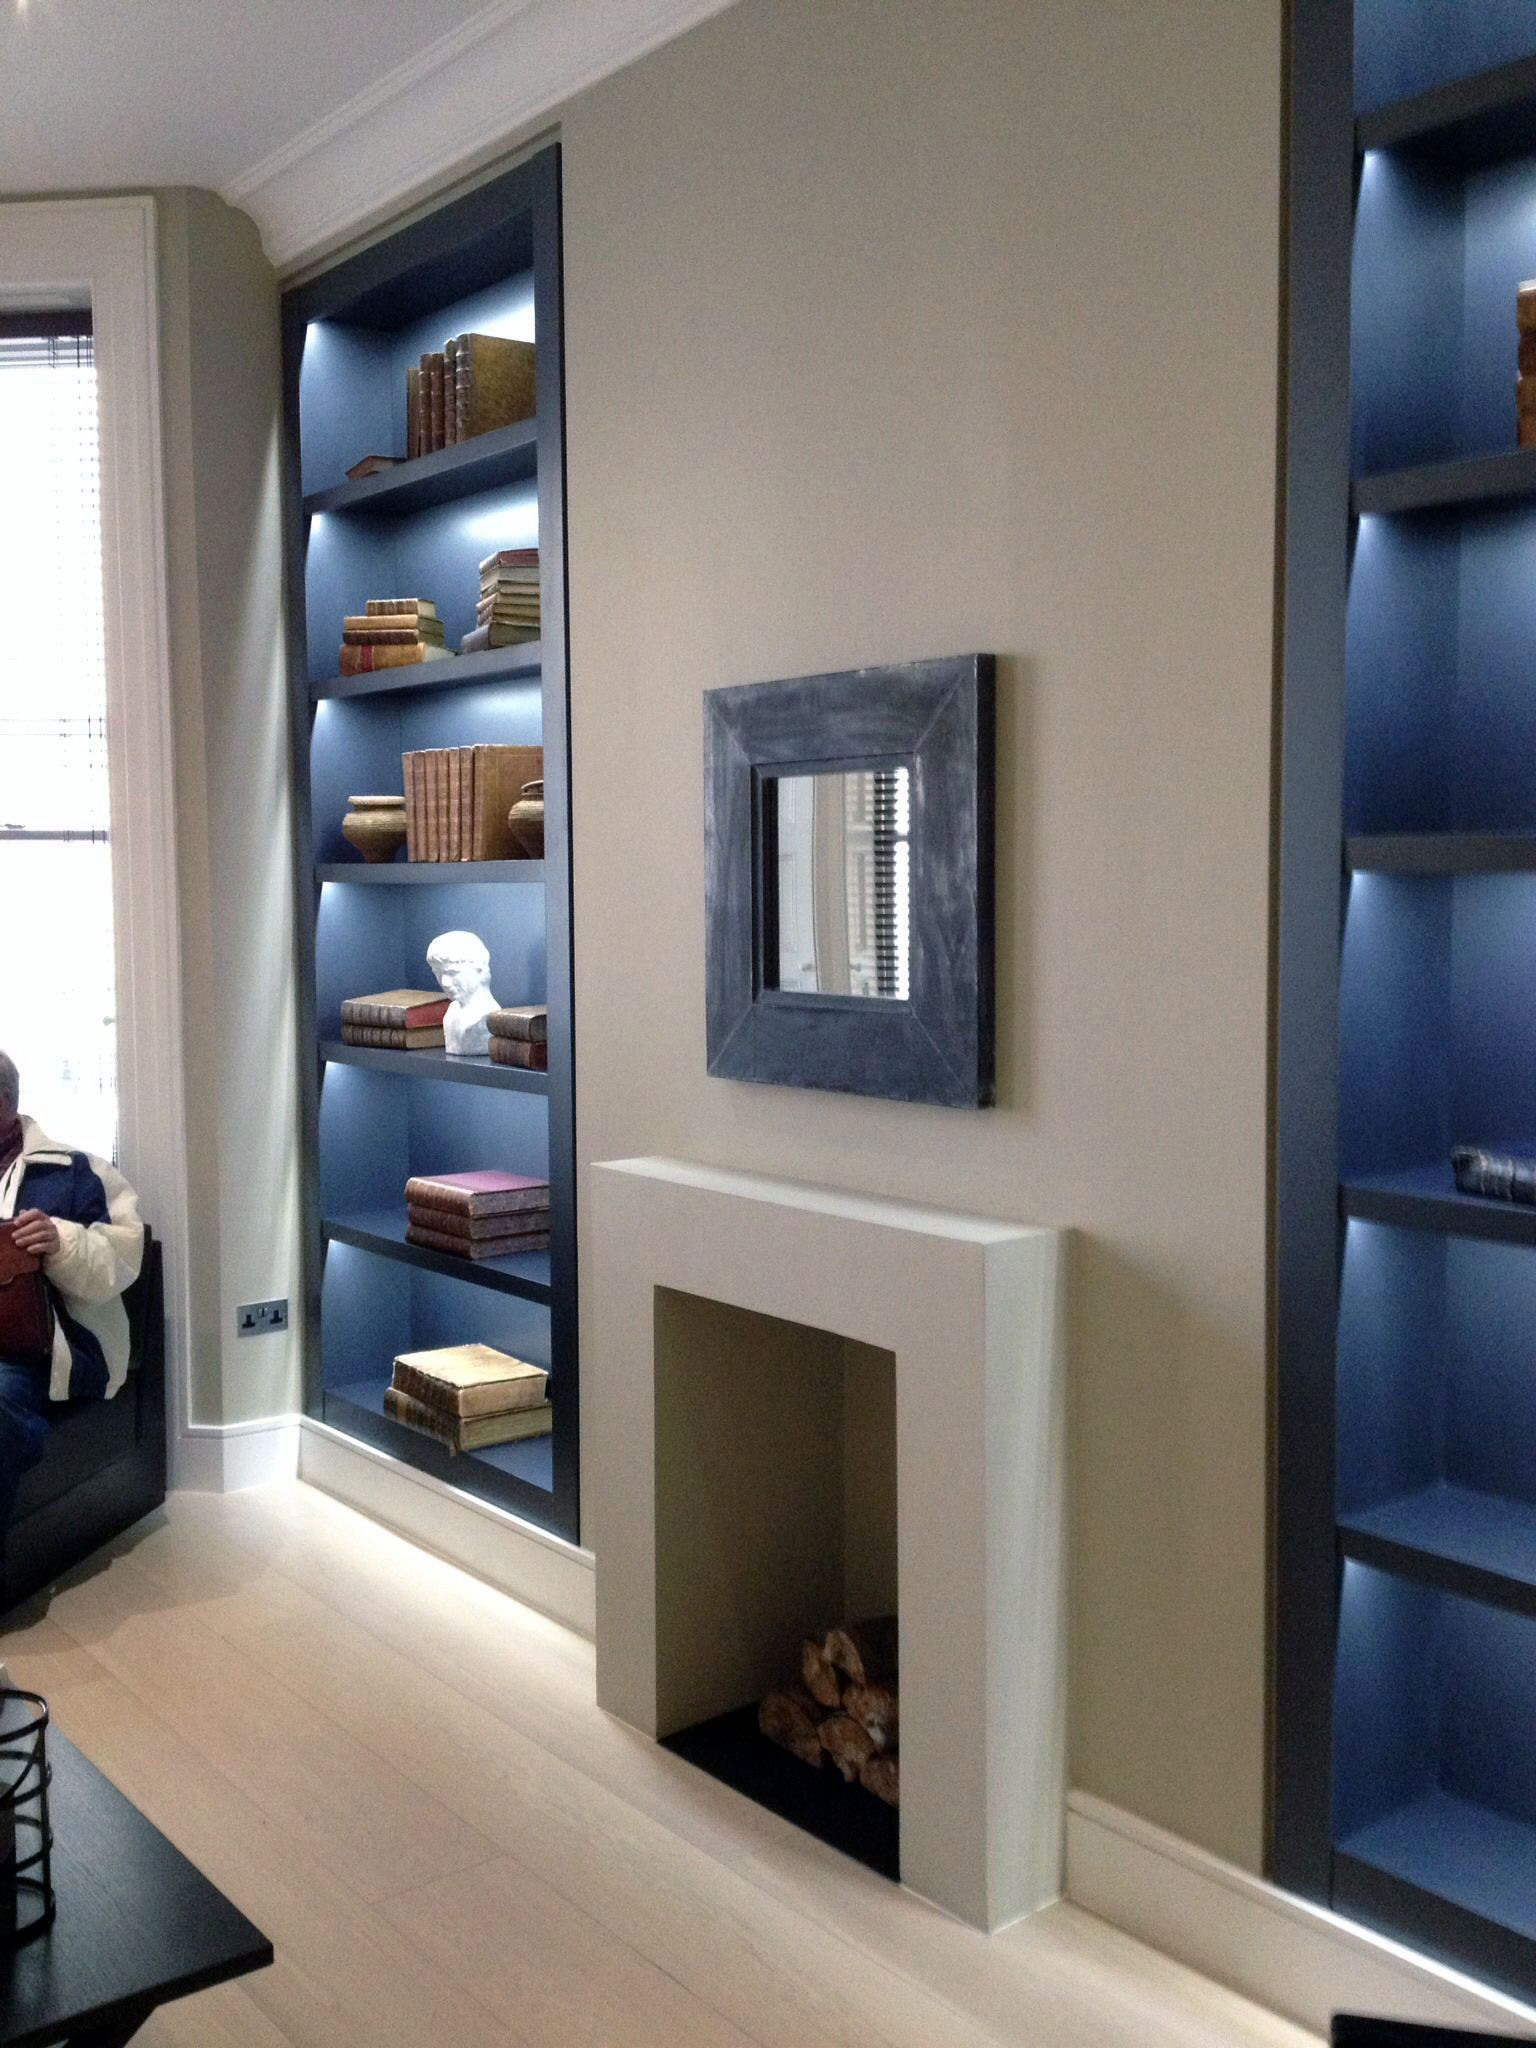 Find living room wall shelving systems to inspire you ...